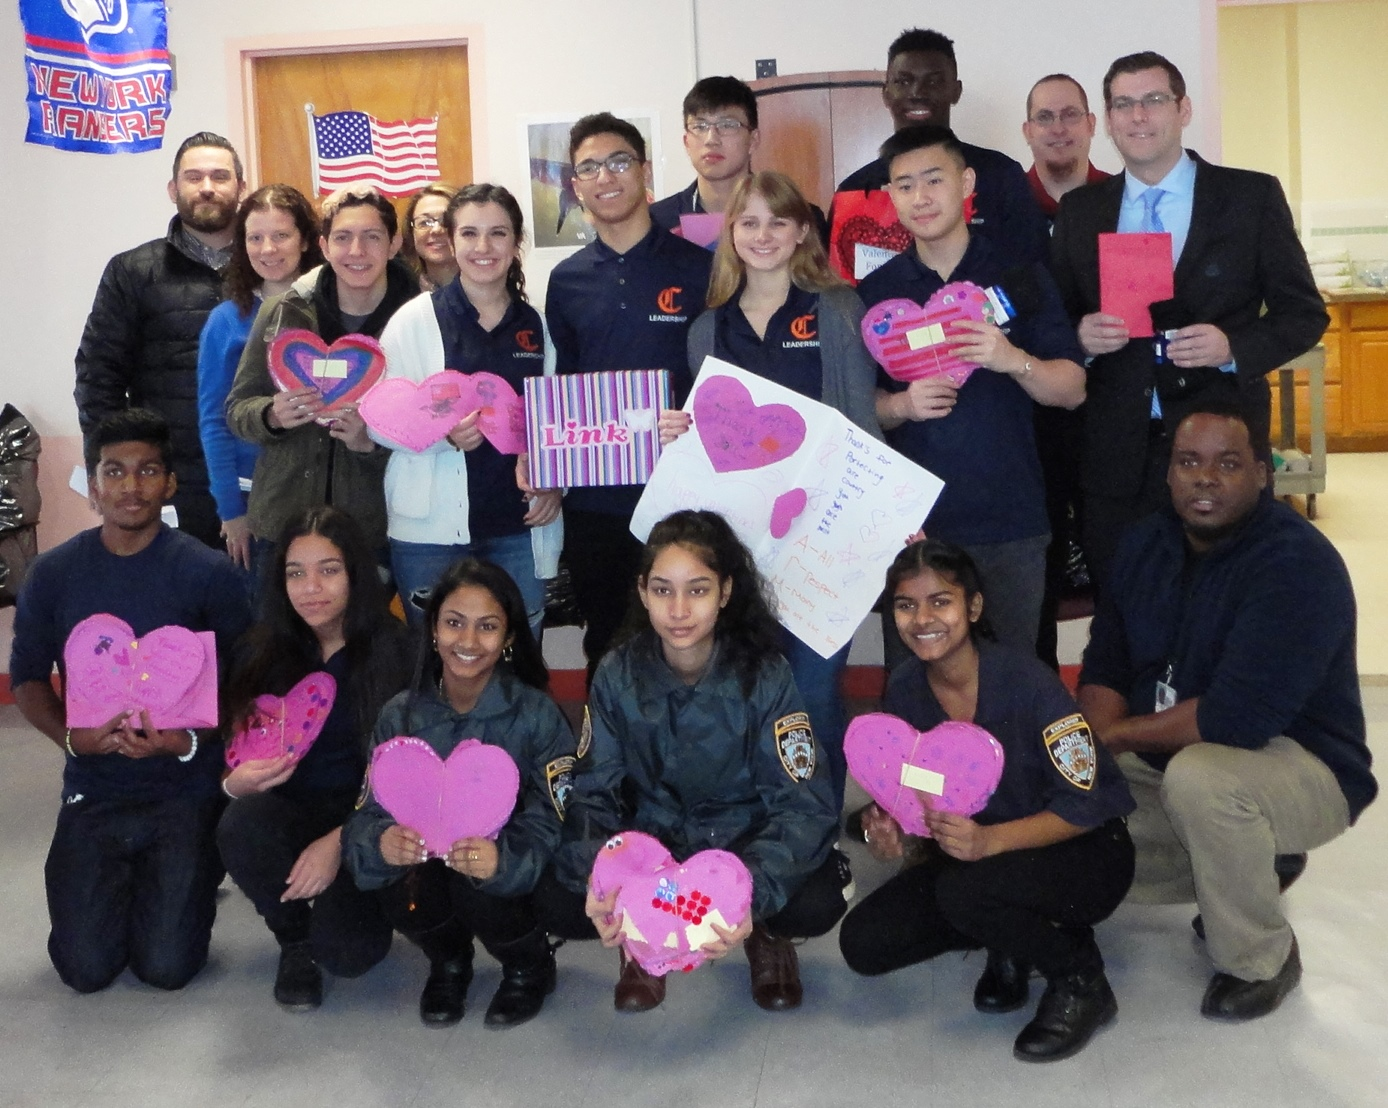 Assemblyman Braunstein, right, with students from Cardozo High School at the St. Albans Community Living Center